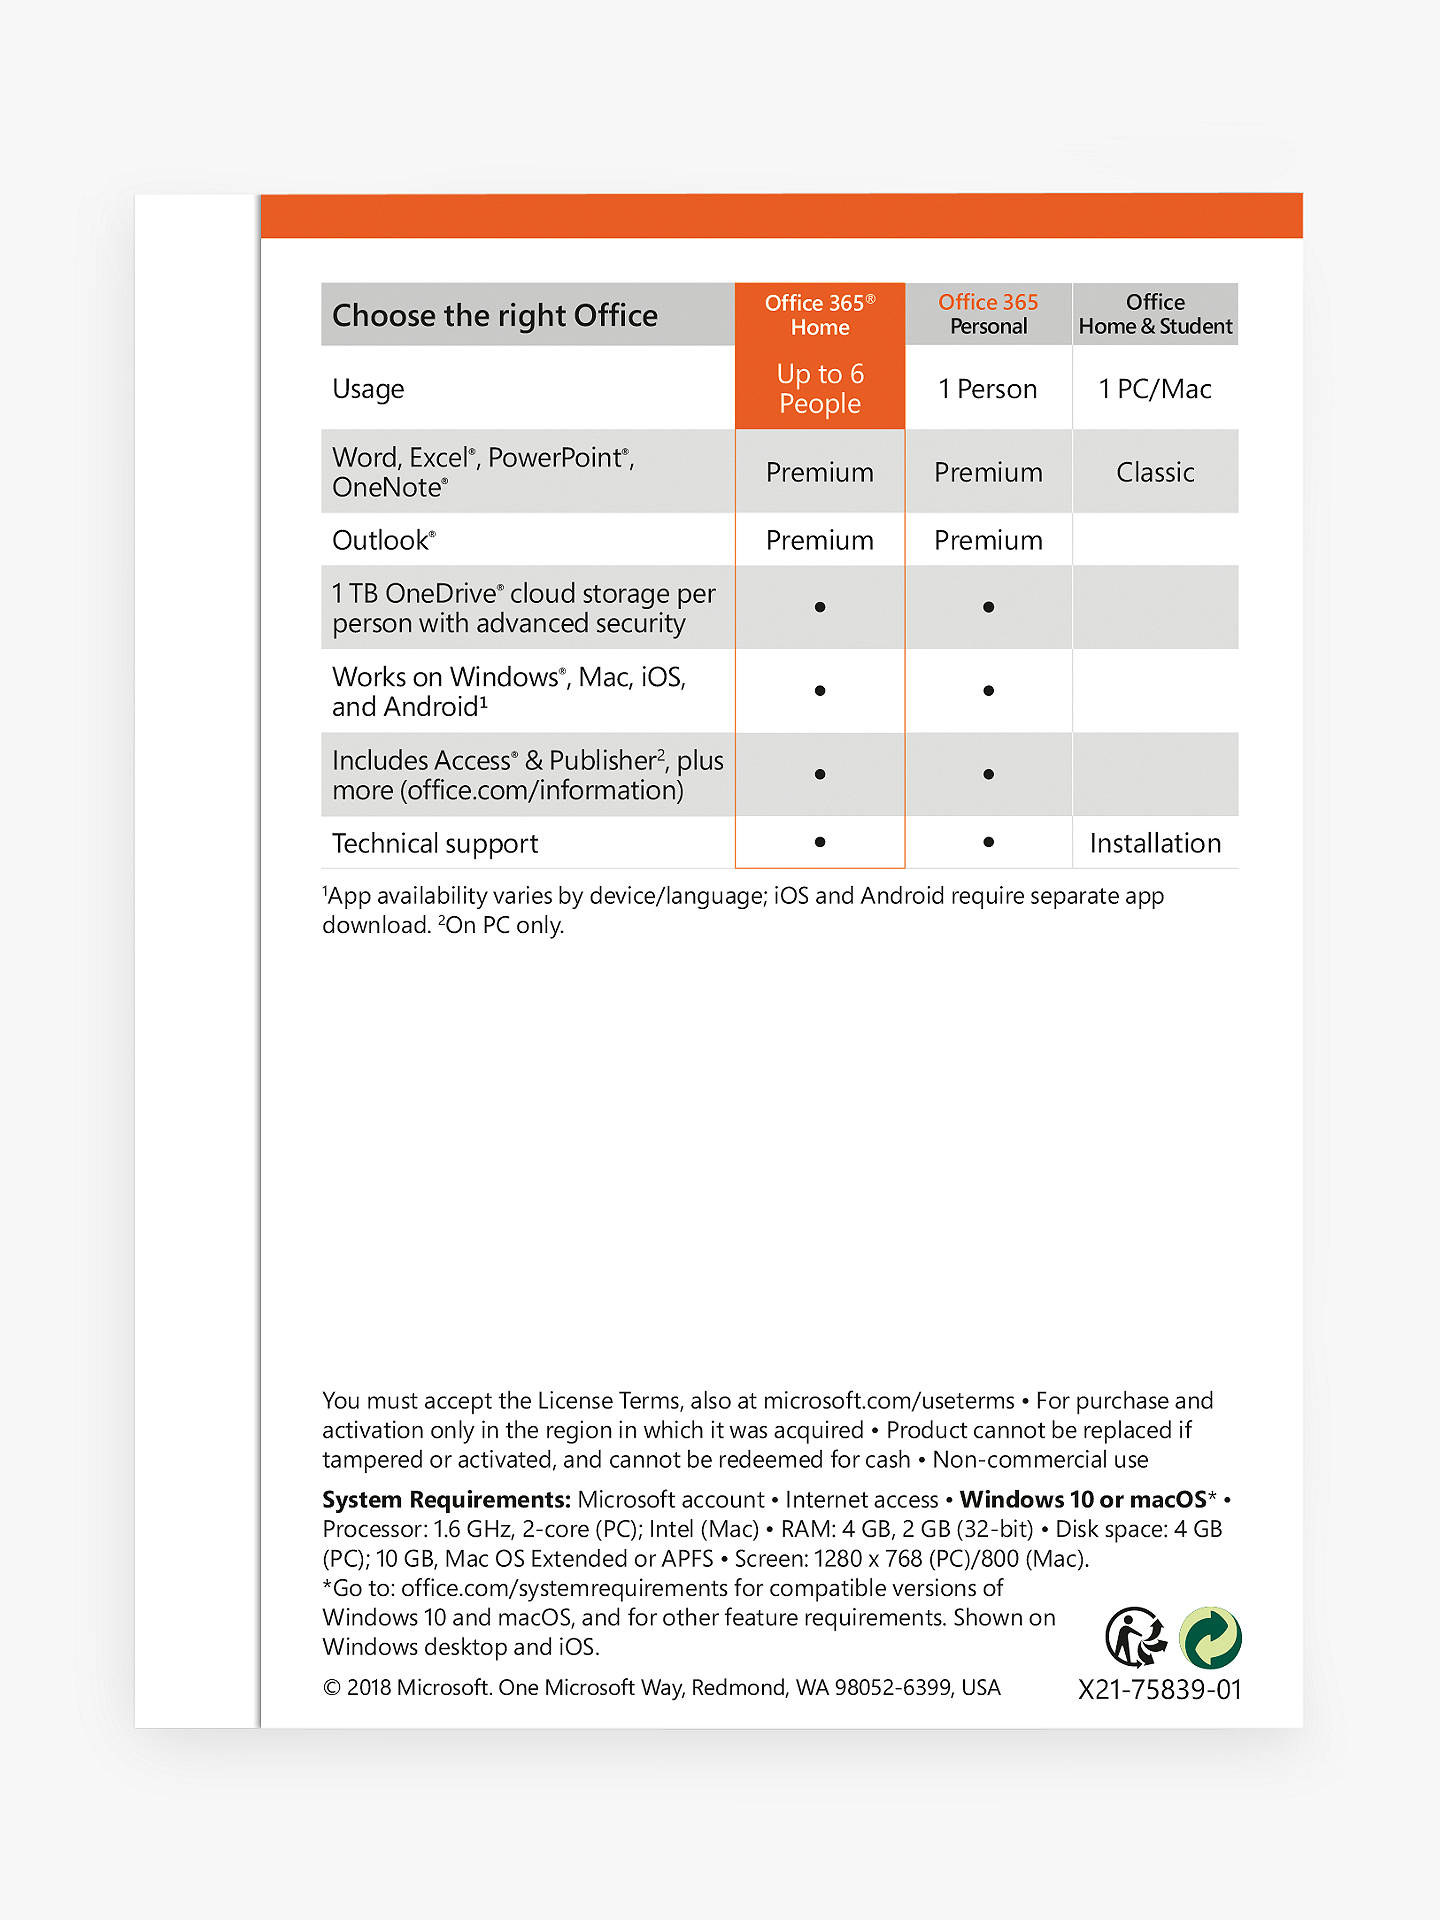 Microsoft Office 365 Home Premium, PC/Mac, Tablets and Smartphones,  One-Year Subscription & Norton Security 3 0: 1 User, 5 Devices (Bundle)